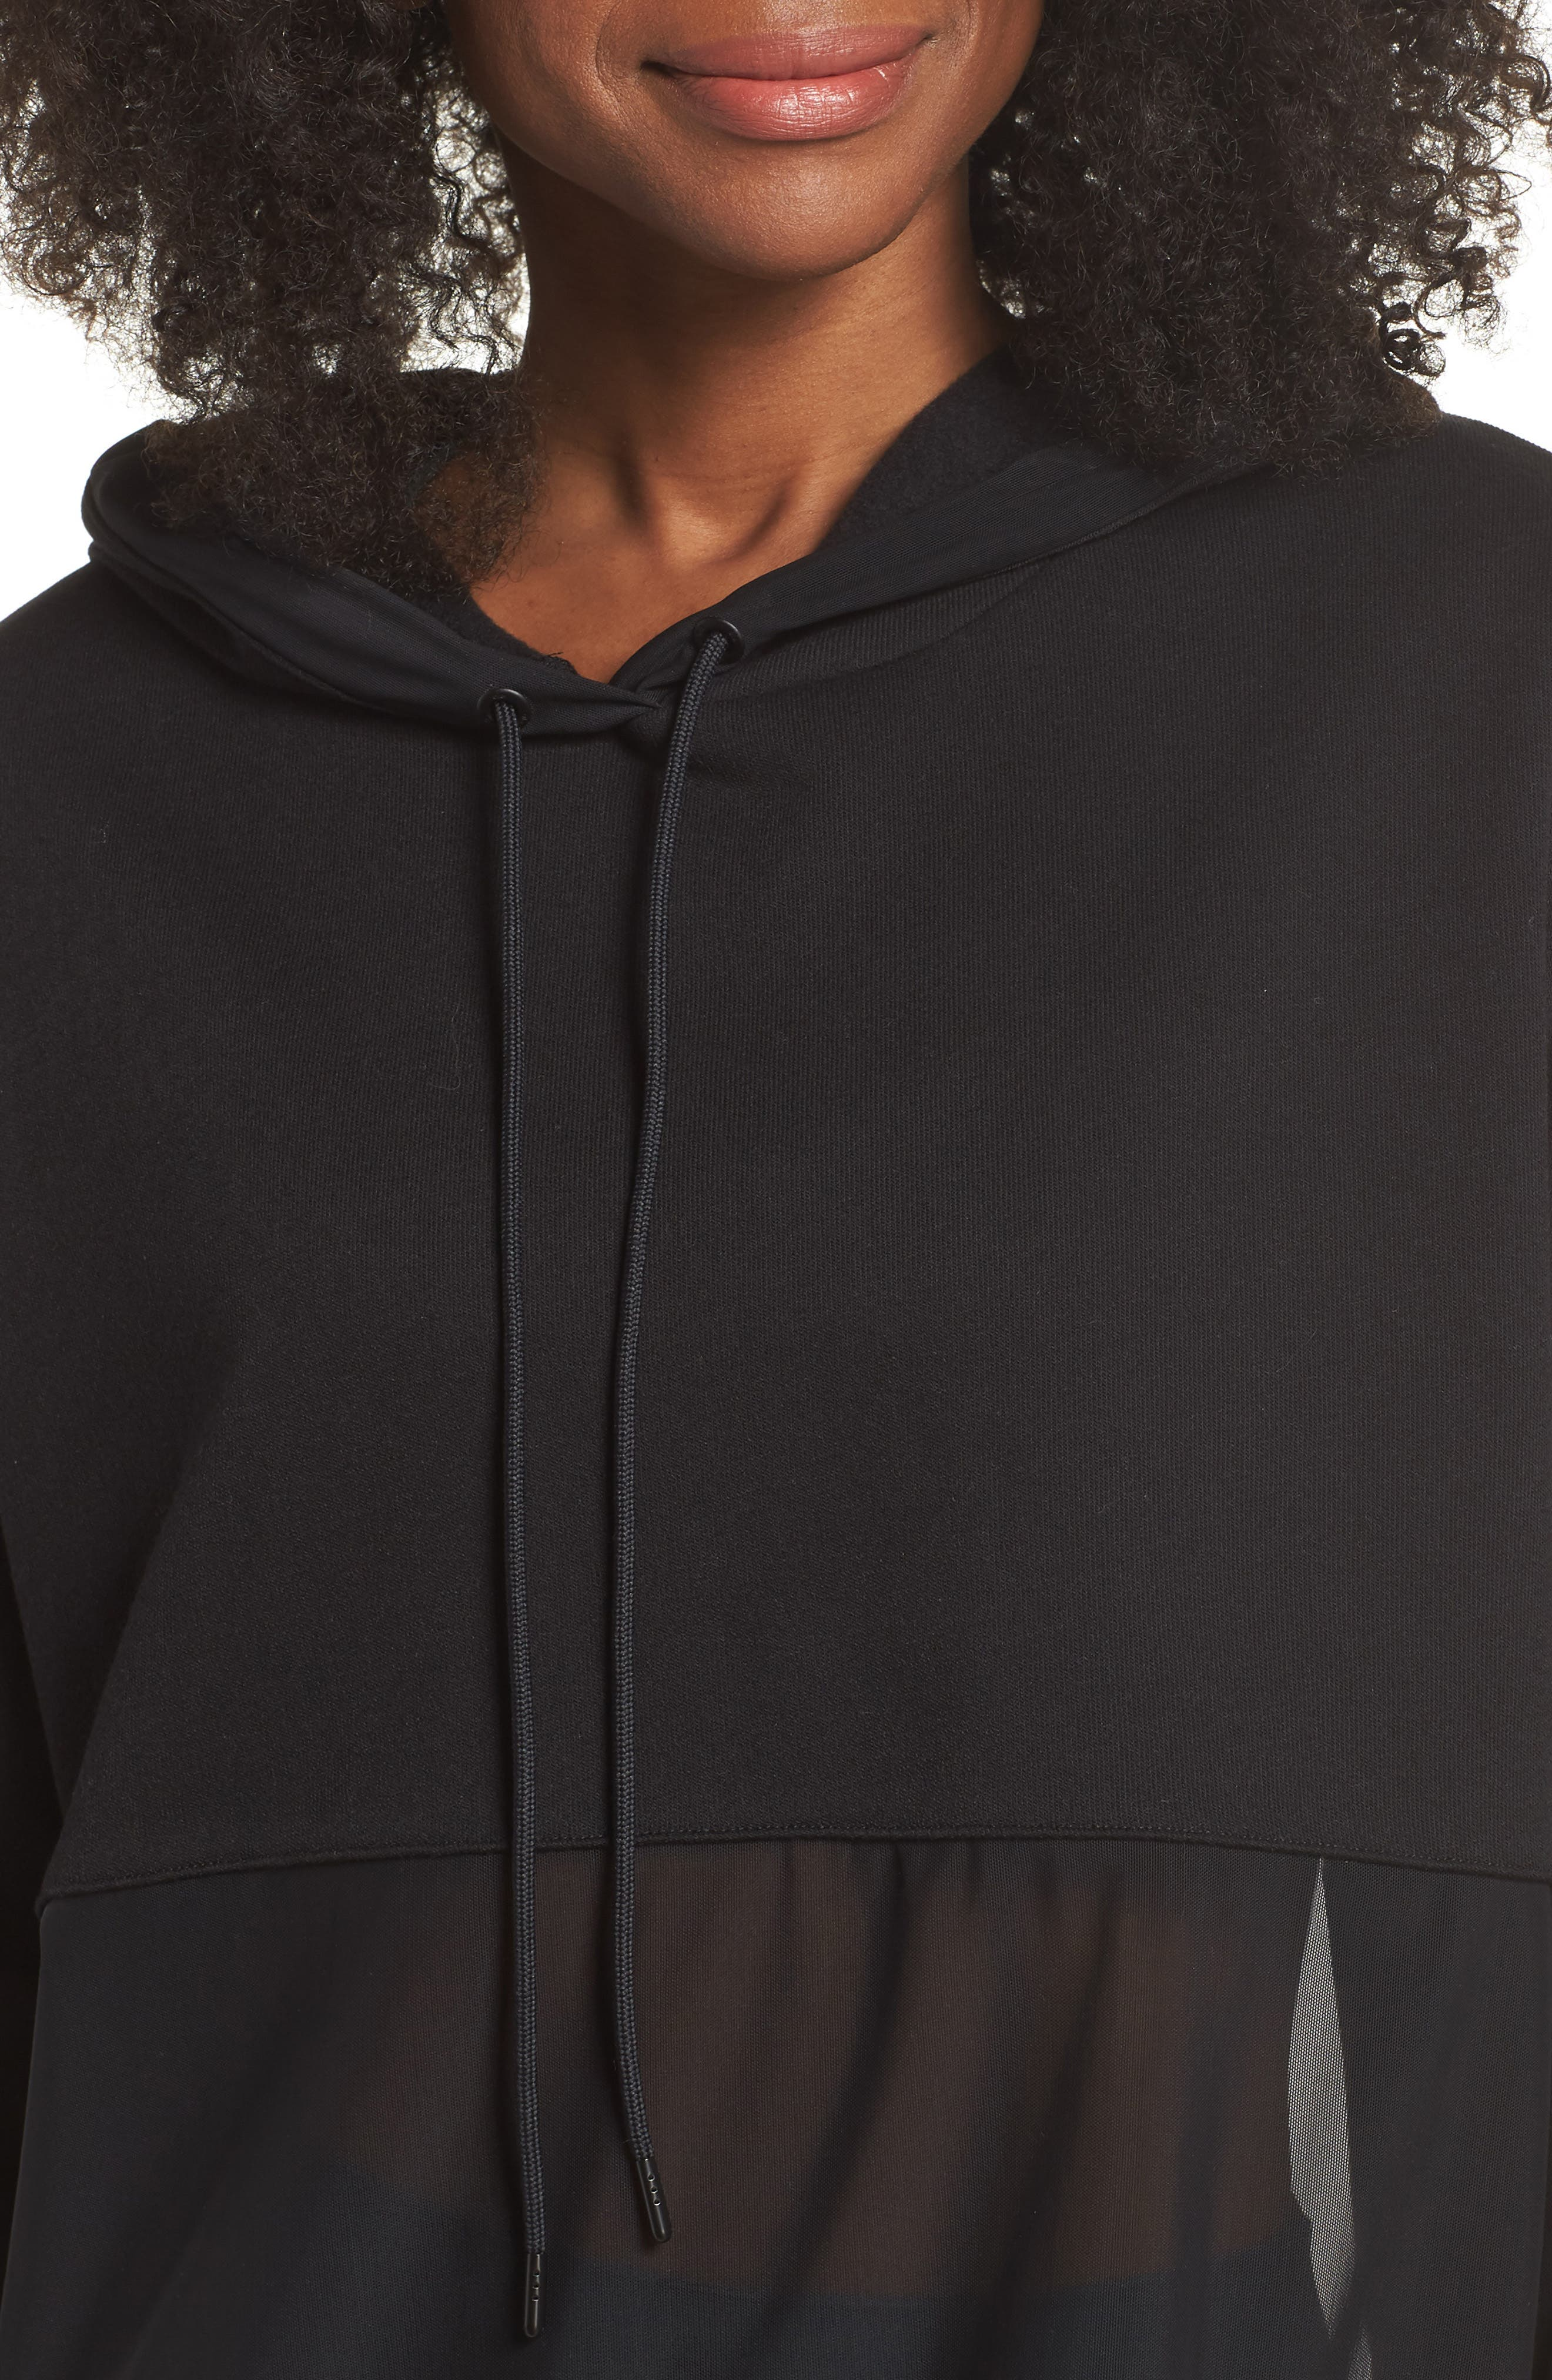 Perspective Hoodie,                             Alternate thumbnail 4, color,                             Black